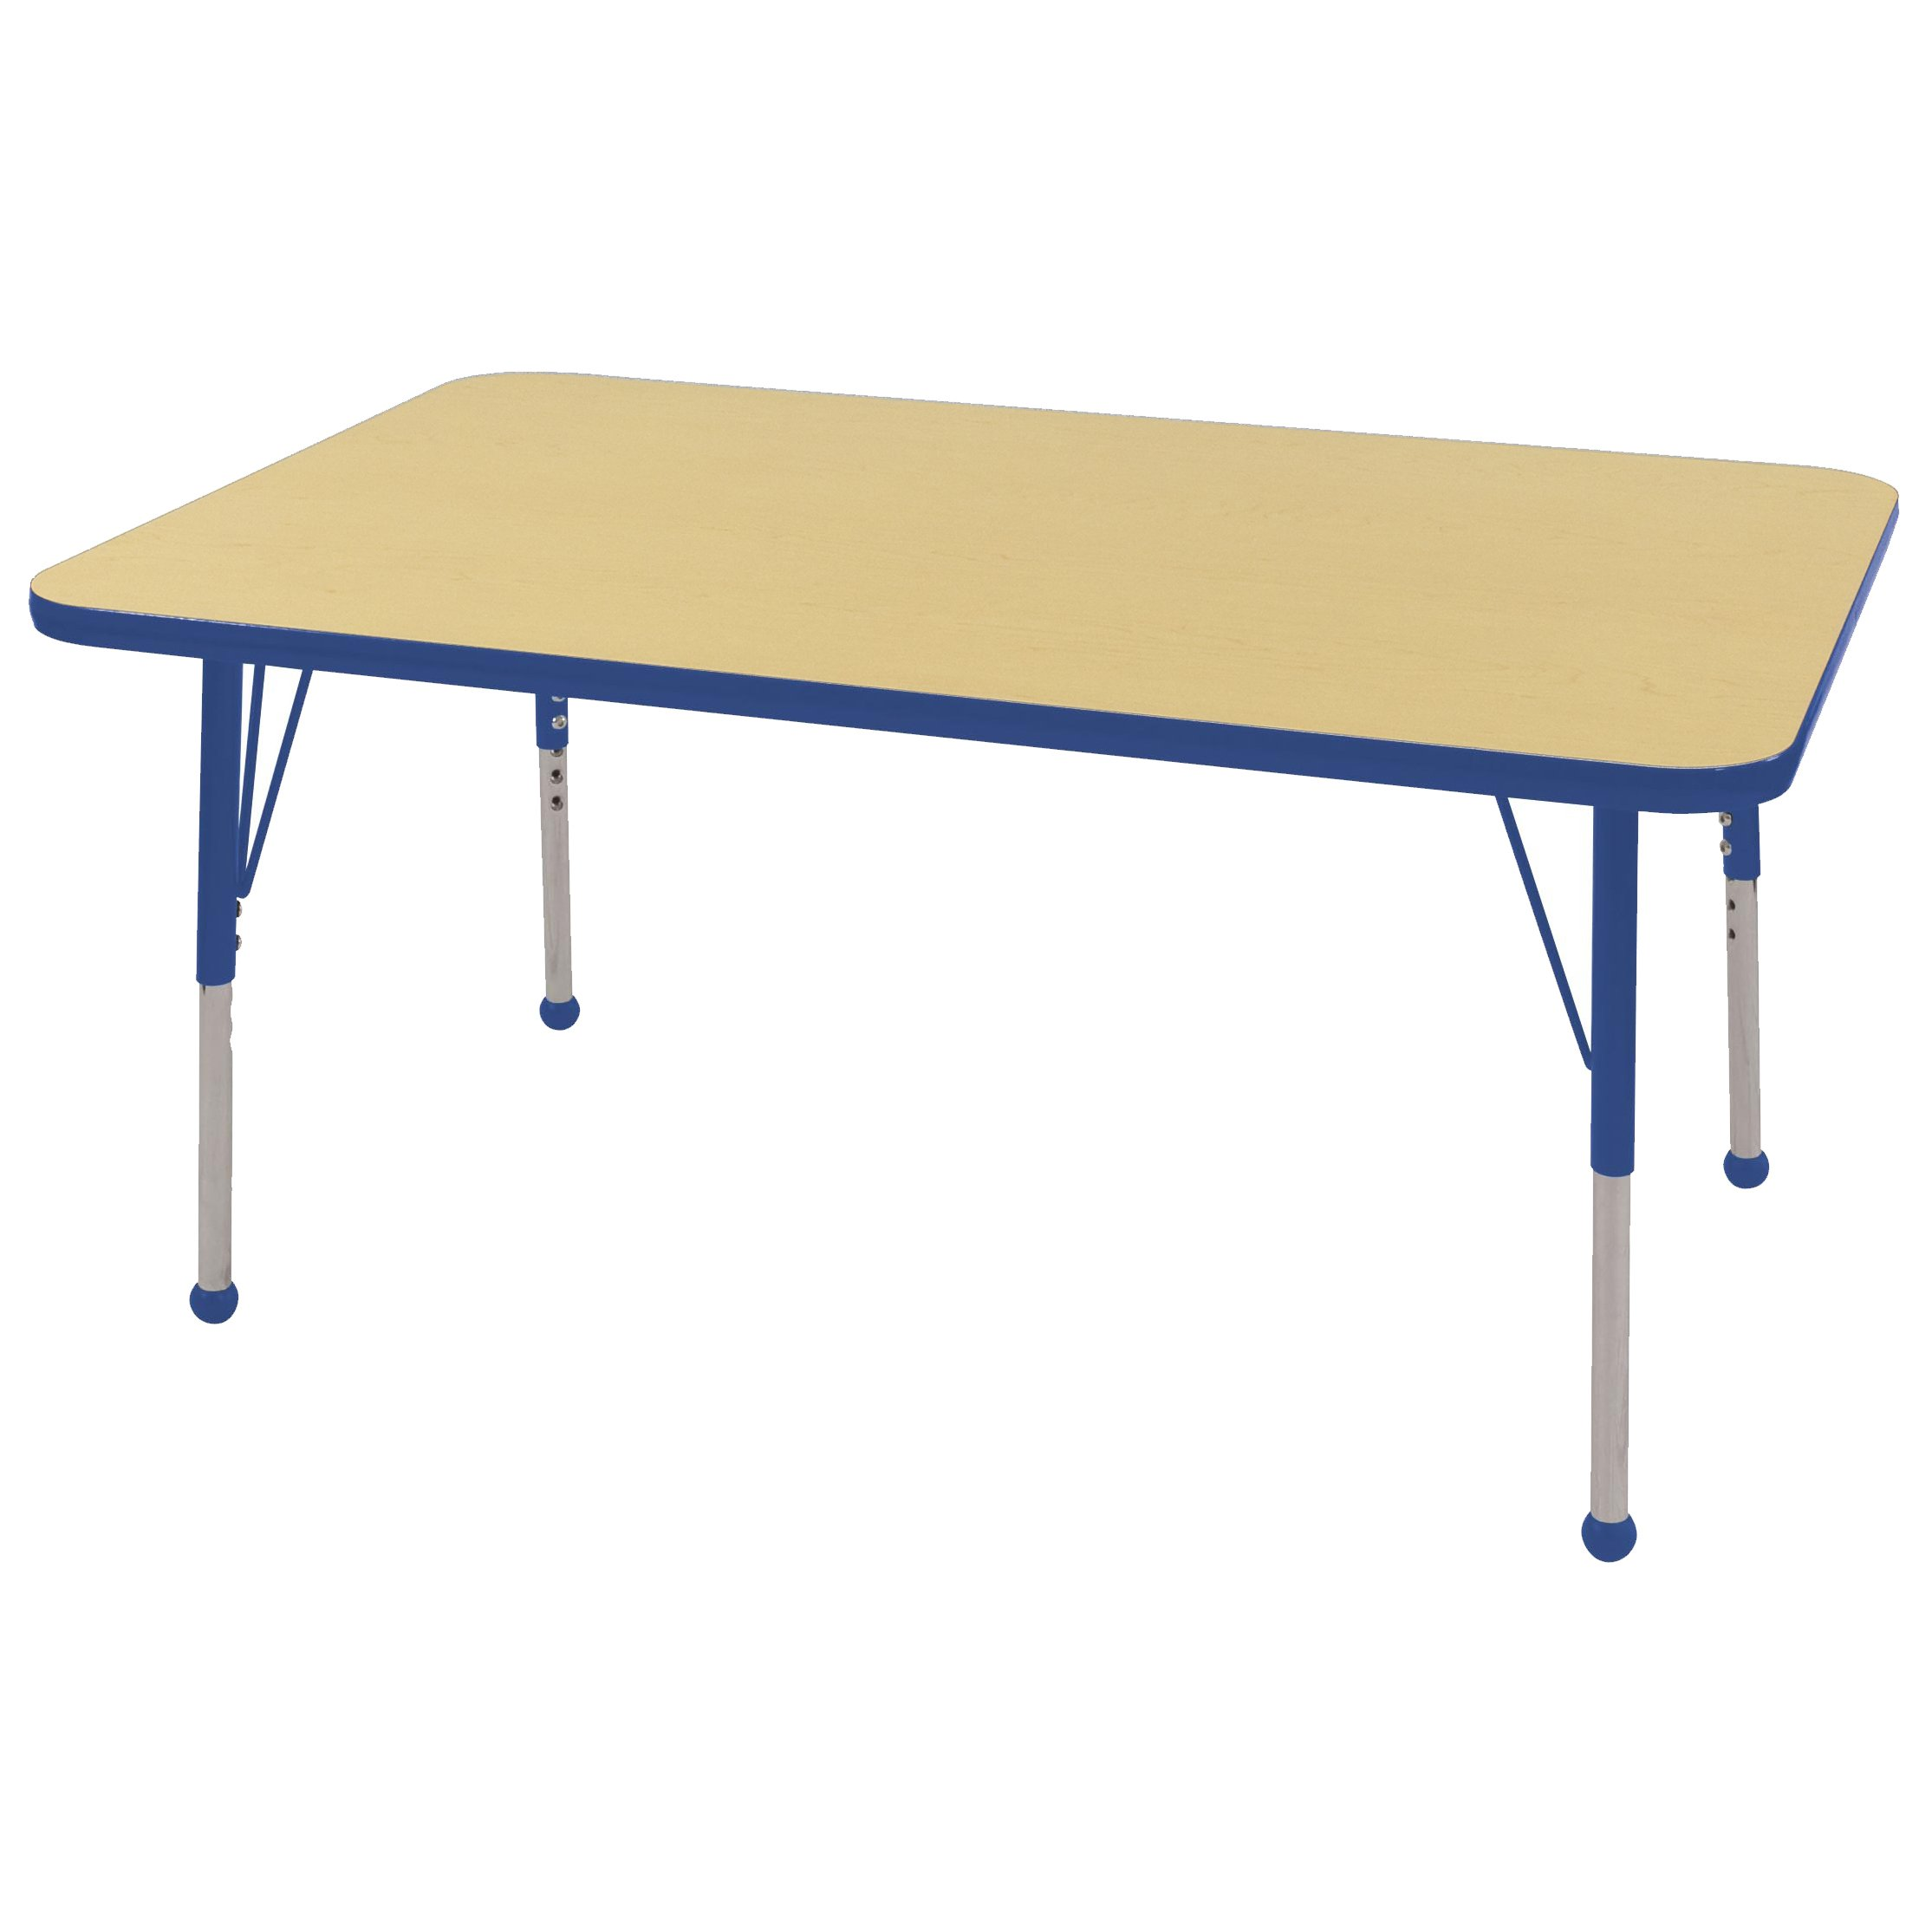 ECR4Kids Mesa T-Mold 30'' x 48'' Rectangular School Activity Table, Standard Legs w/Ball Glides, Adjustable Height 19-30 inch (Maple/Blue)